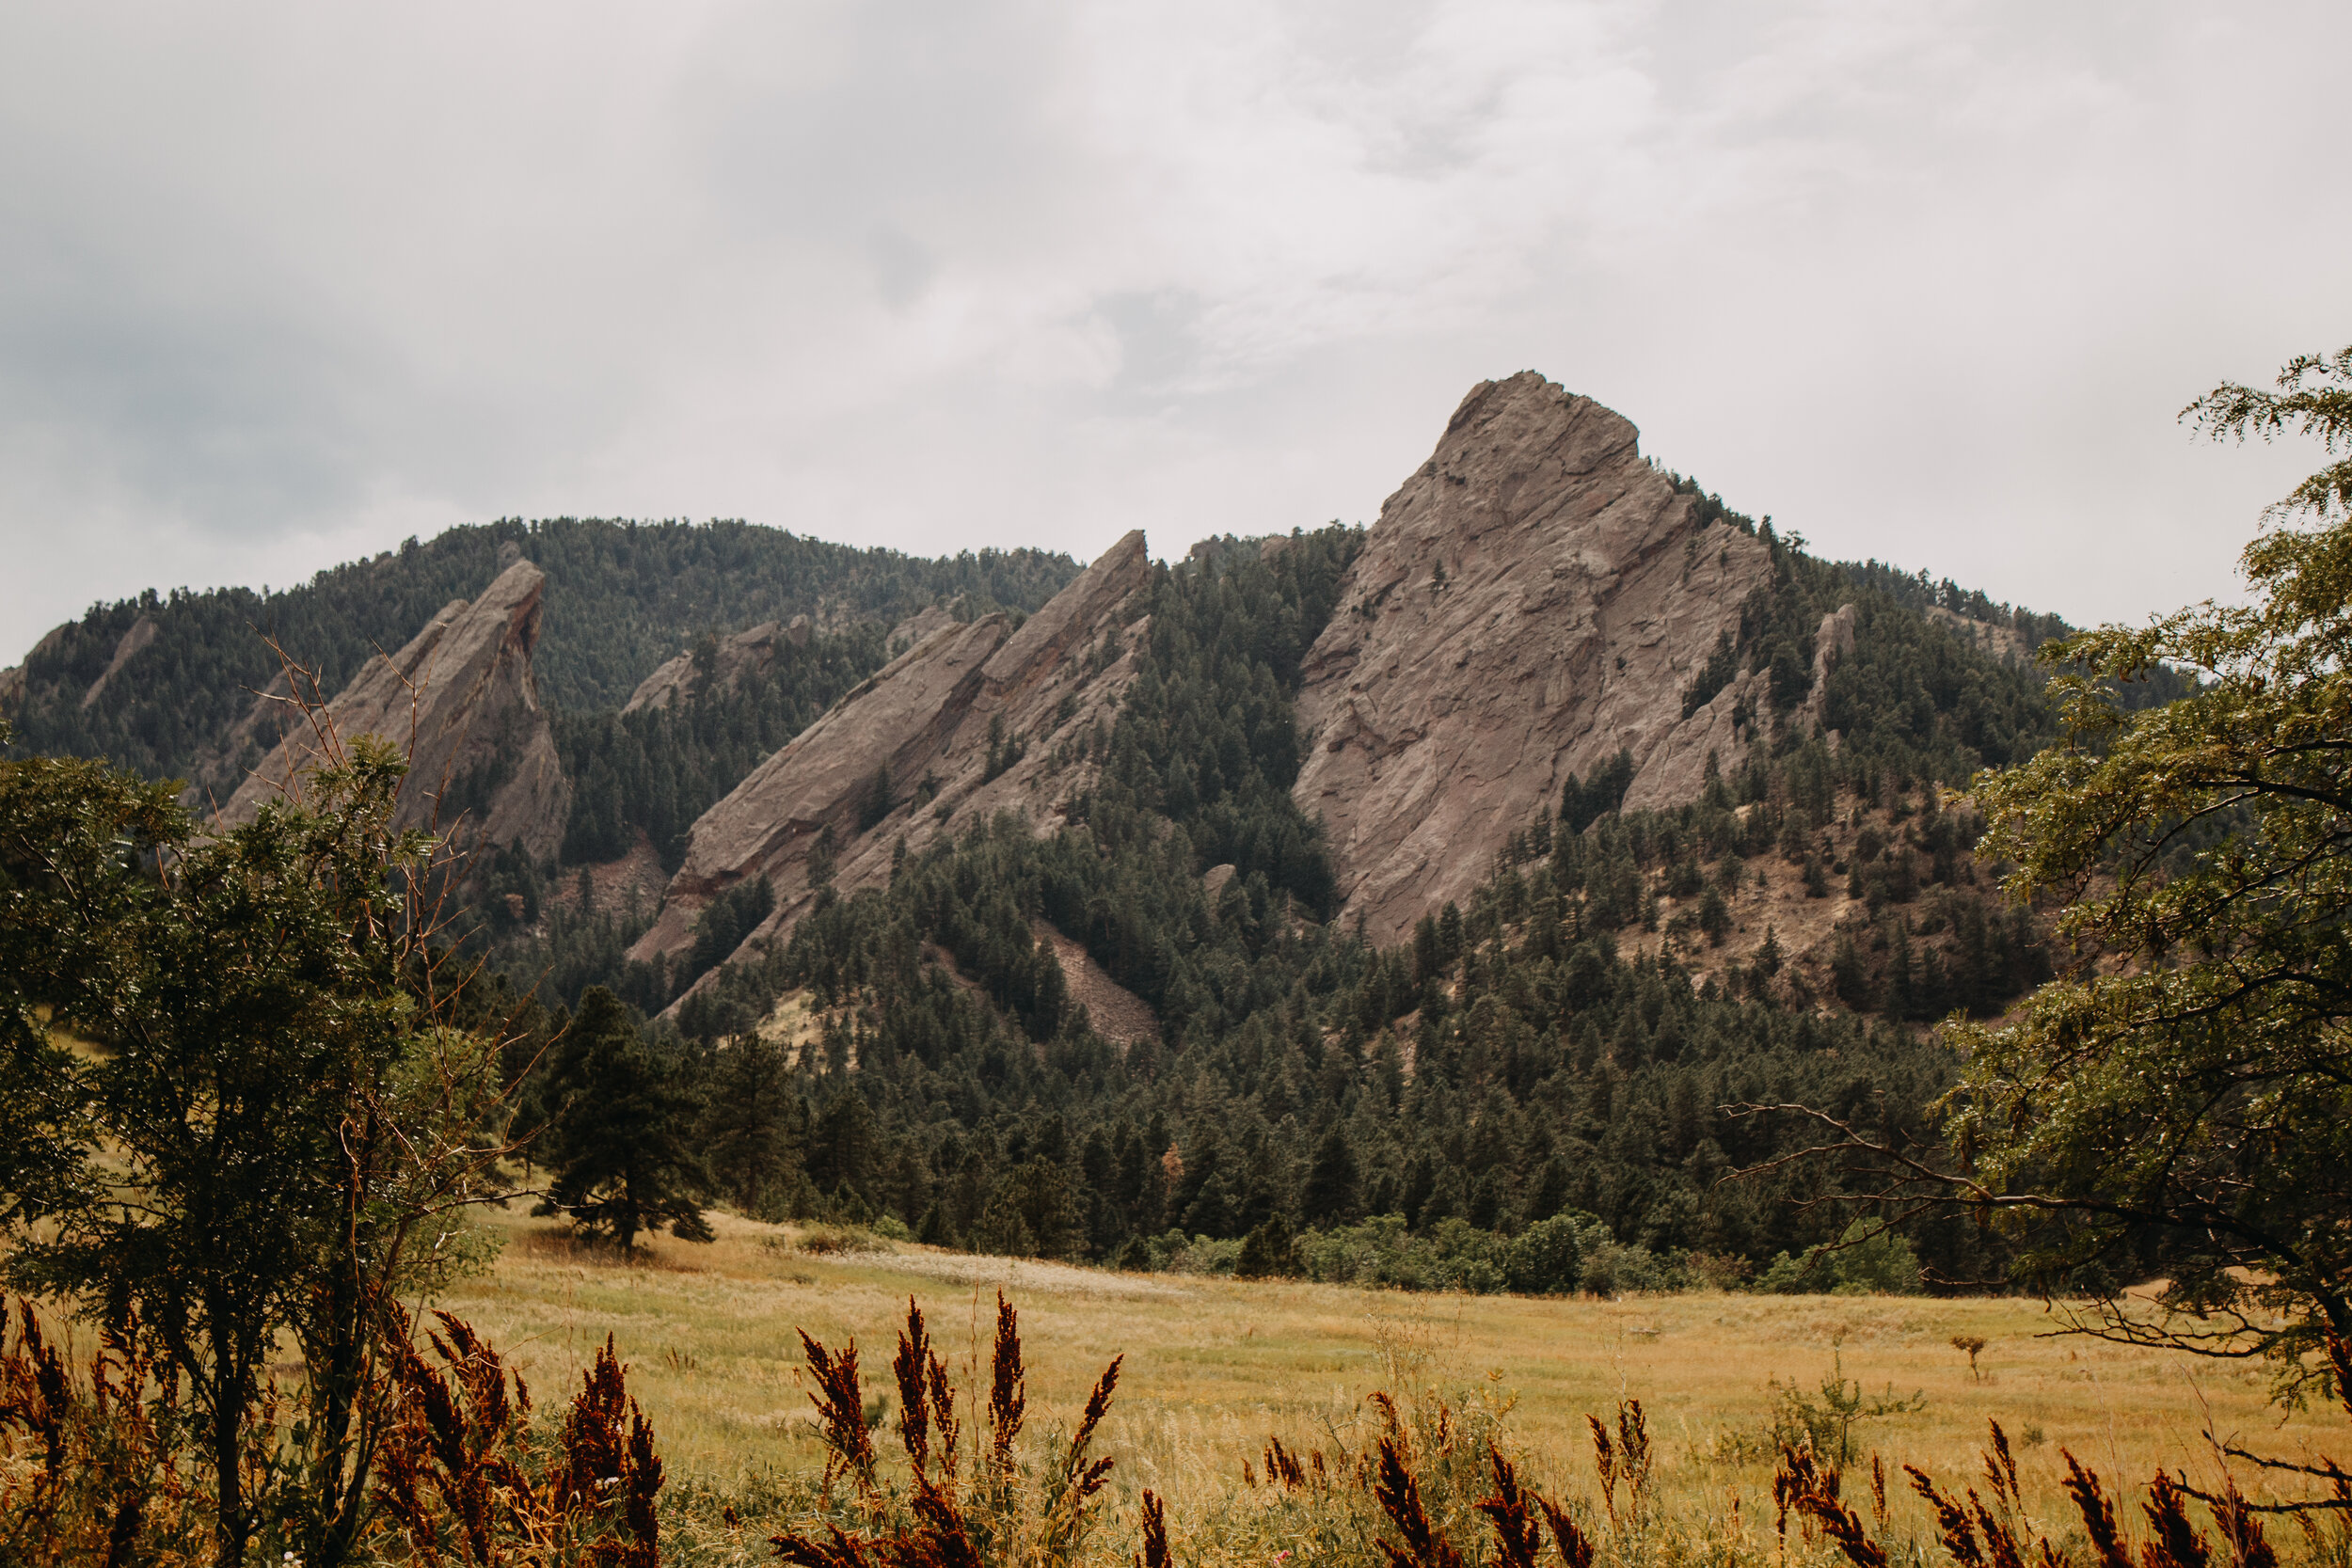 All three Flat Irons from our starting point! The peak on the left is where the Royal Arch is located.